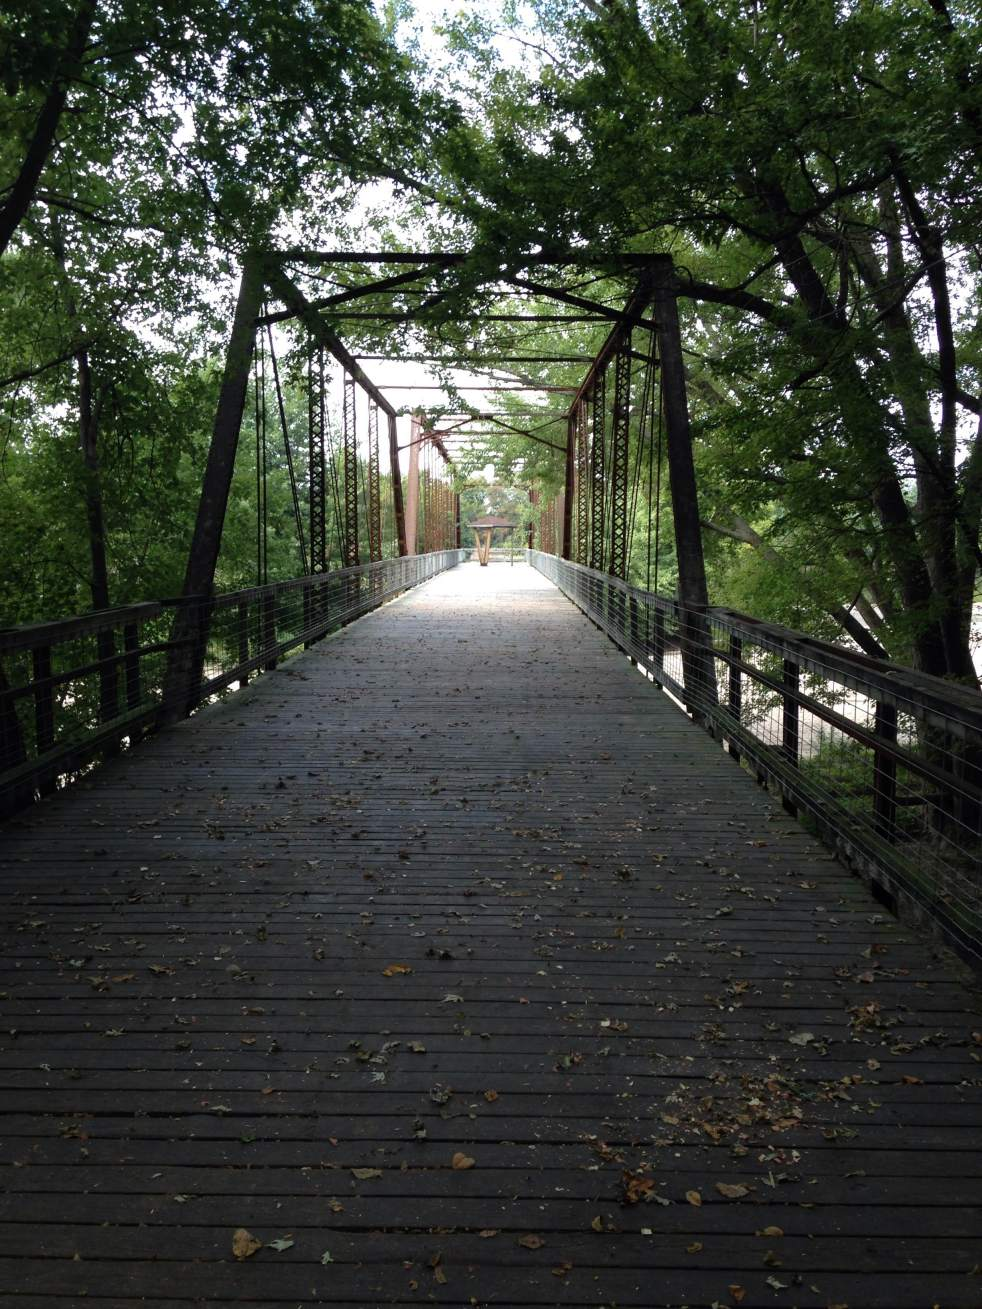 Through the dense woods we stumbled on what we were looking for. The old Saulsbury Bridge. Now serving as a tool of discovery and imagination for Team Goodvin and anyone else loves areas like this. The Cedar River was down on this day and that allowed us to explore under the bridge and along the sandbars. Tell what else you need to fill up your day!